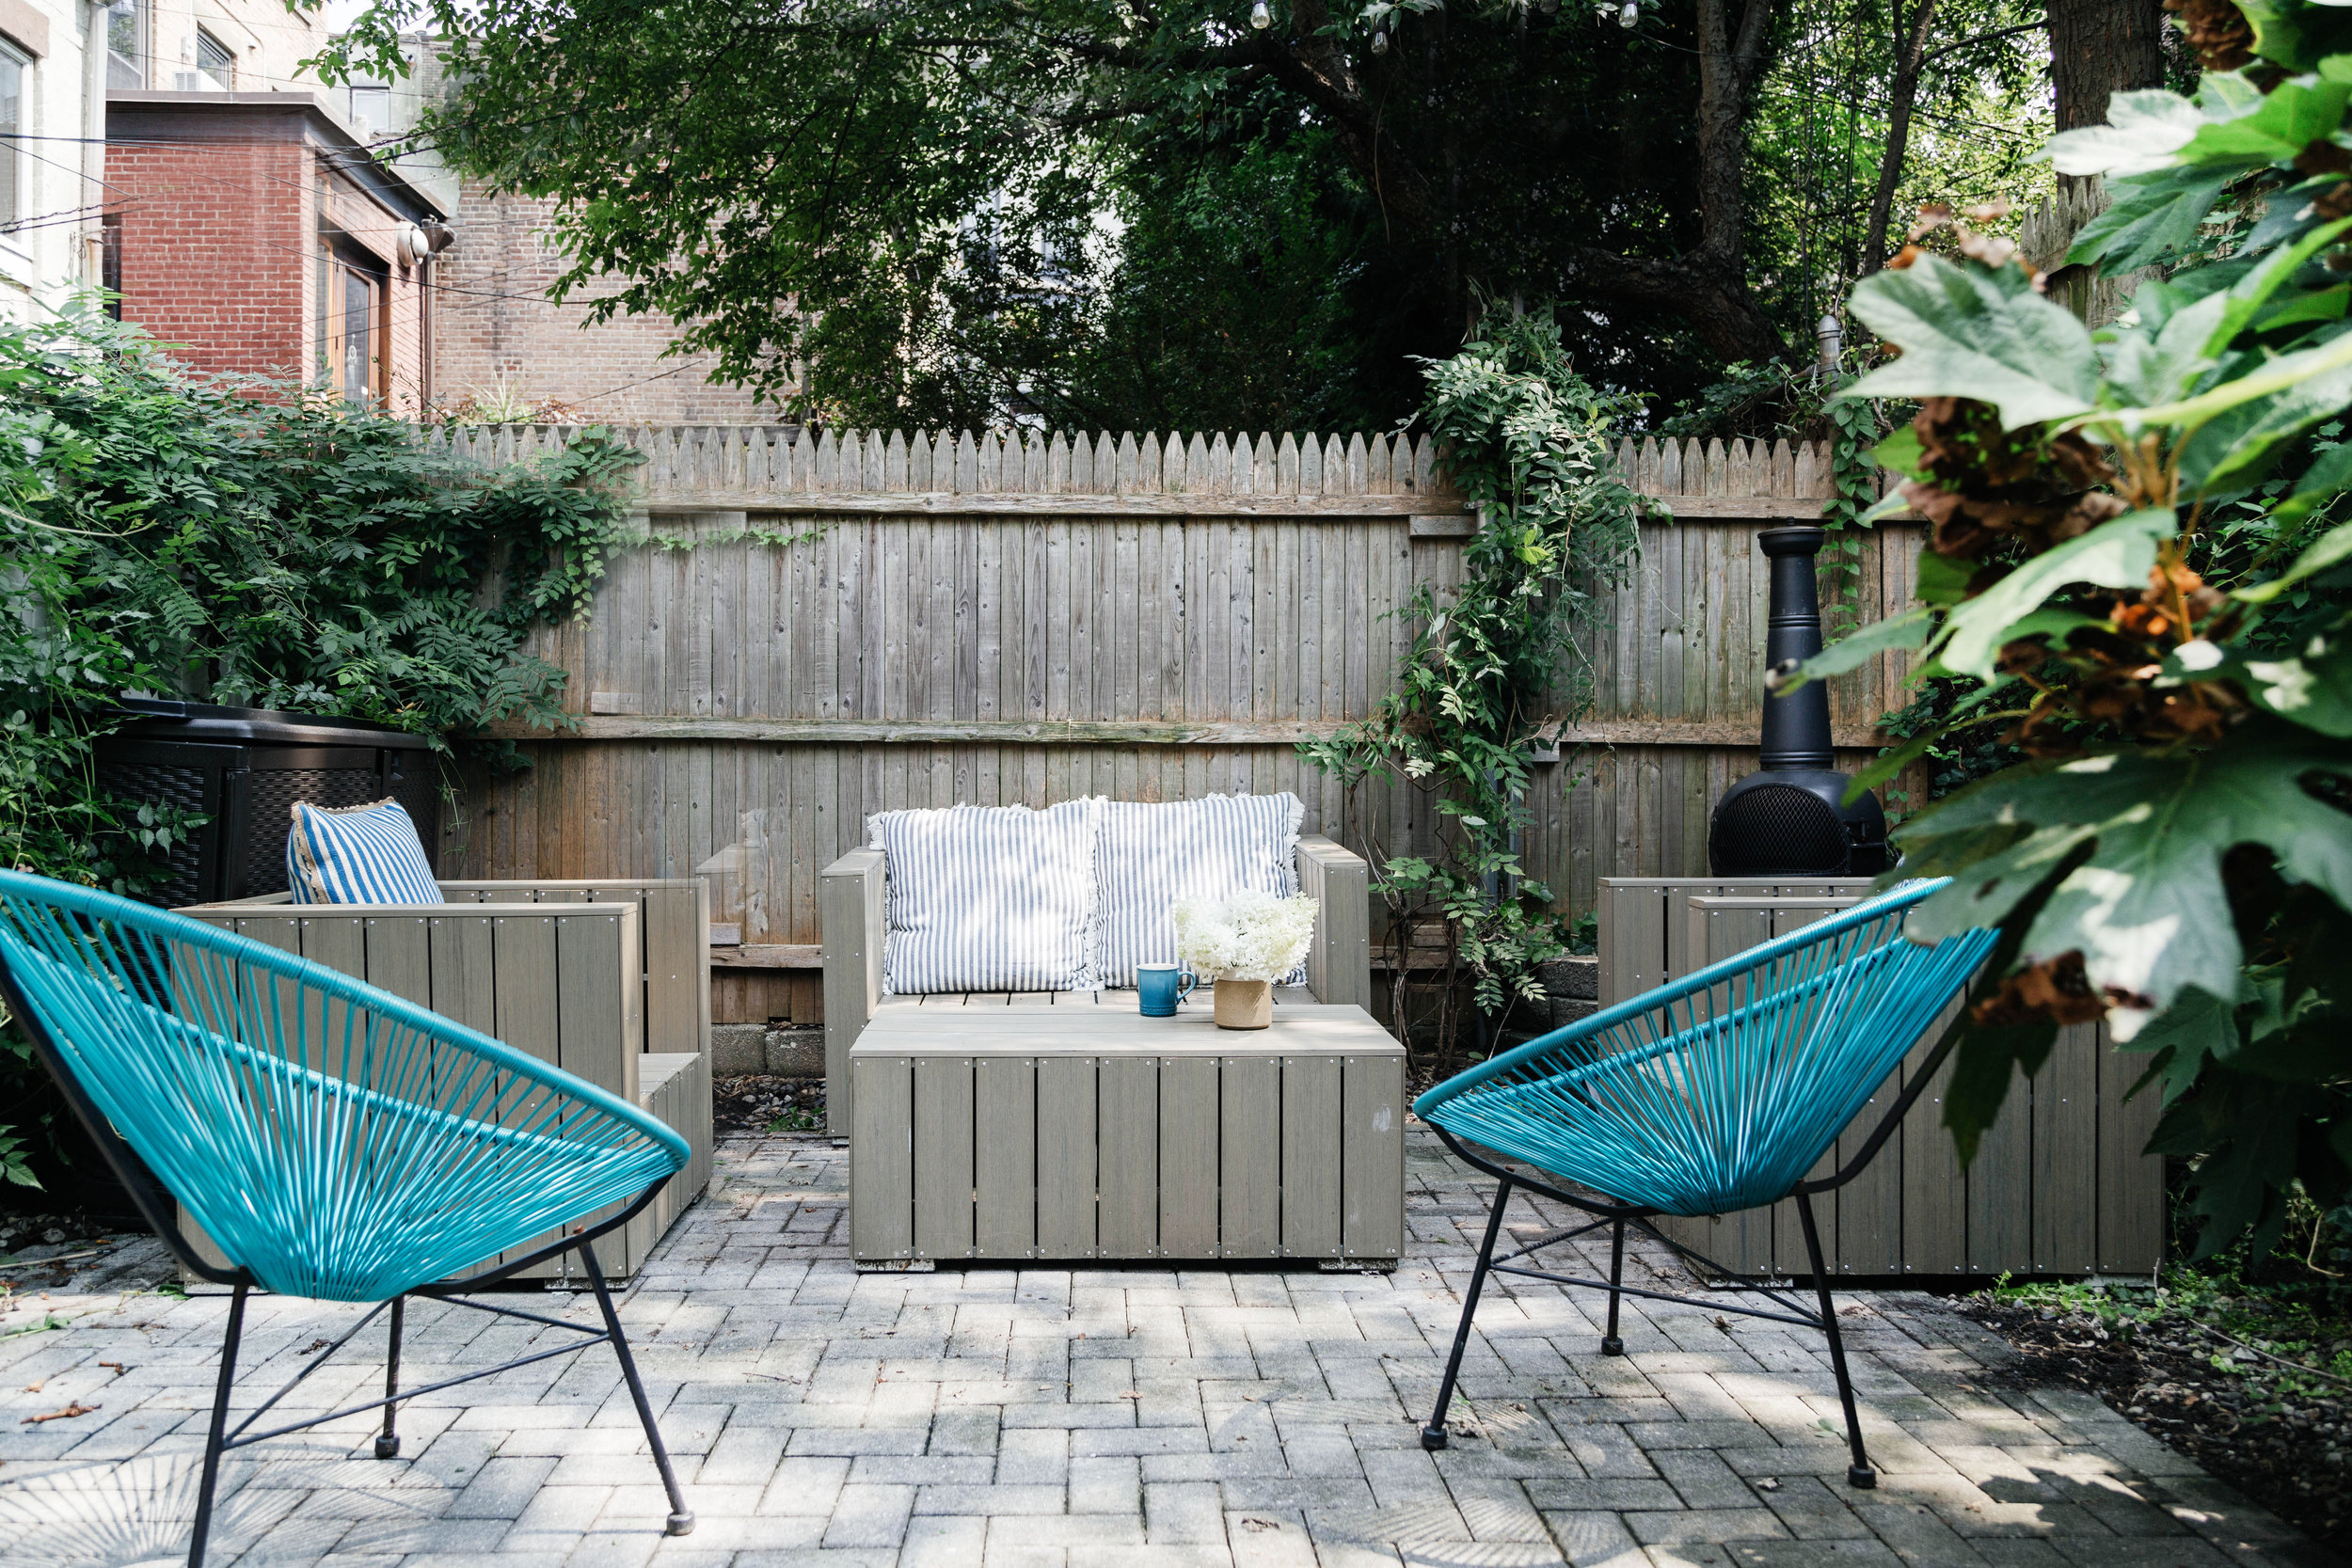 Outdoor seating area with blue chairs